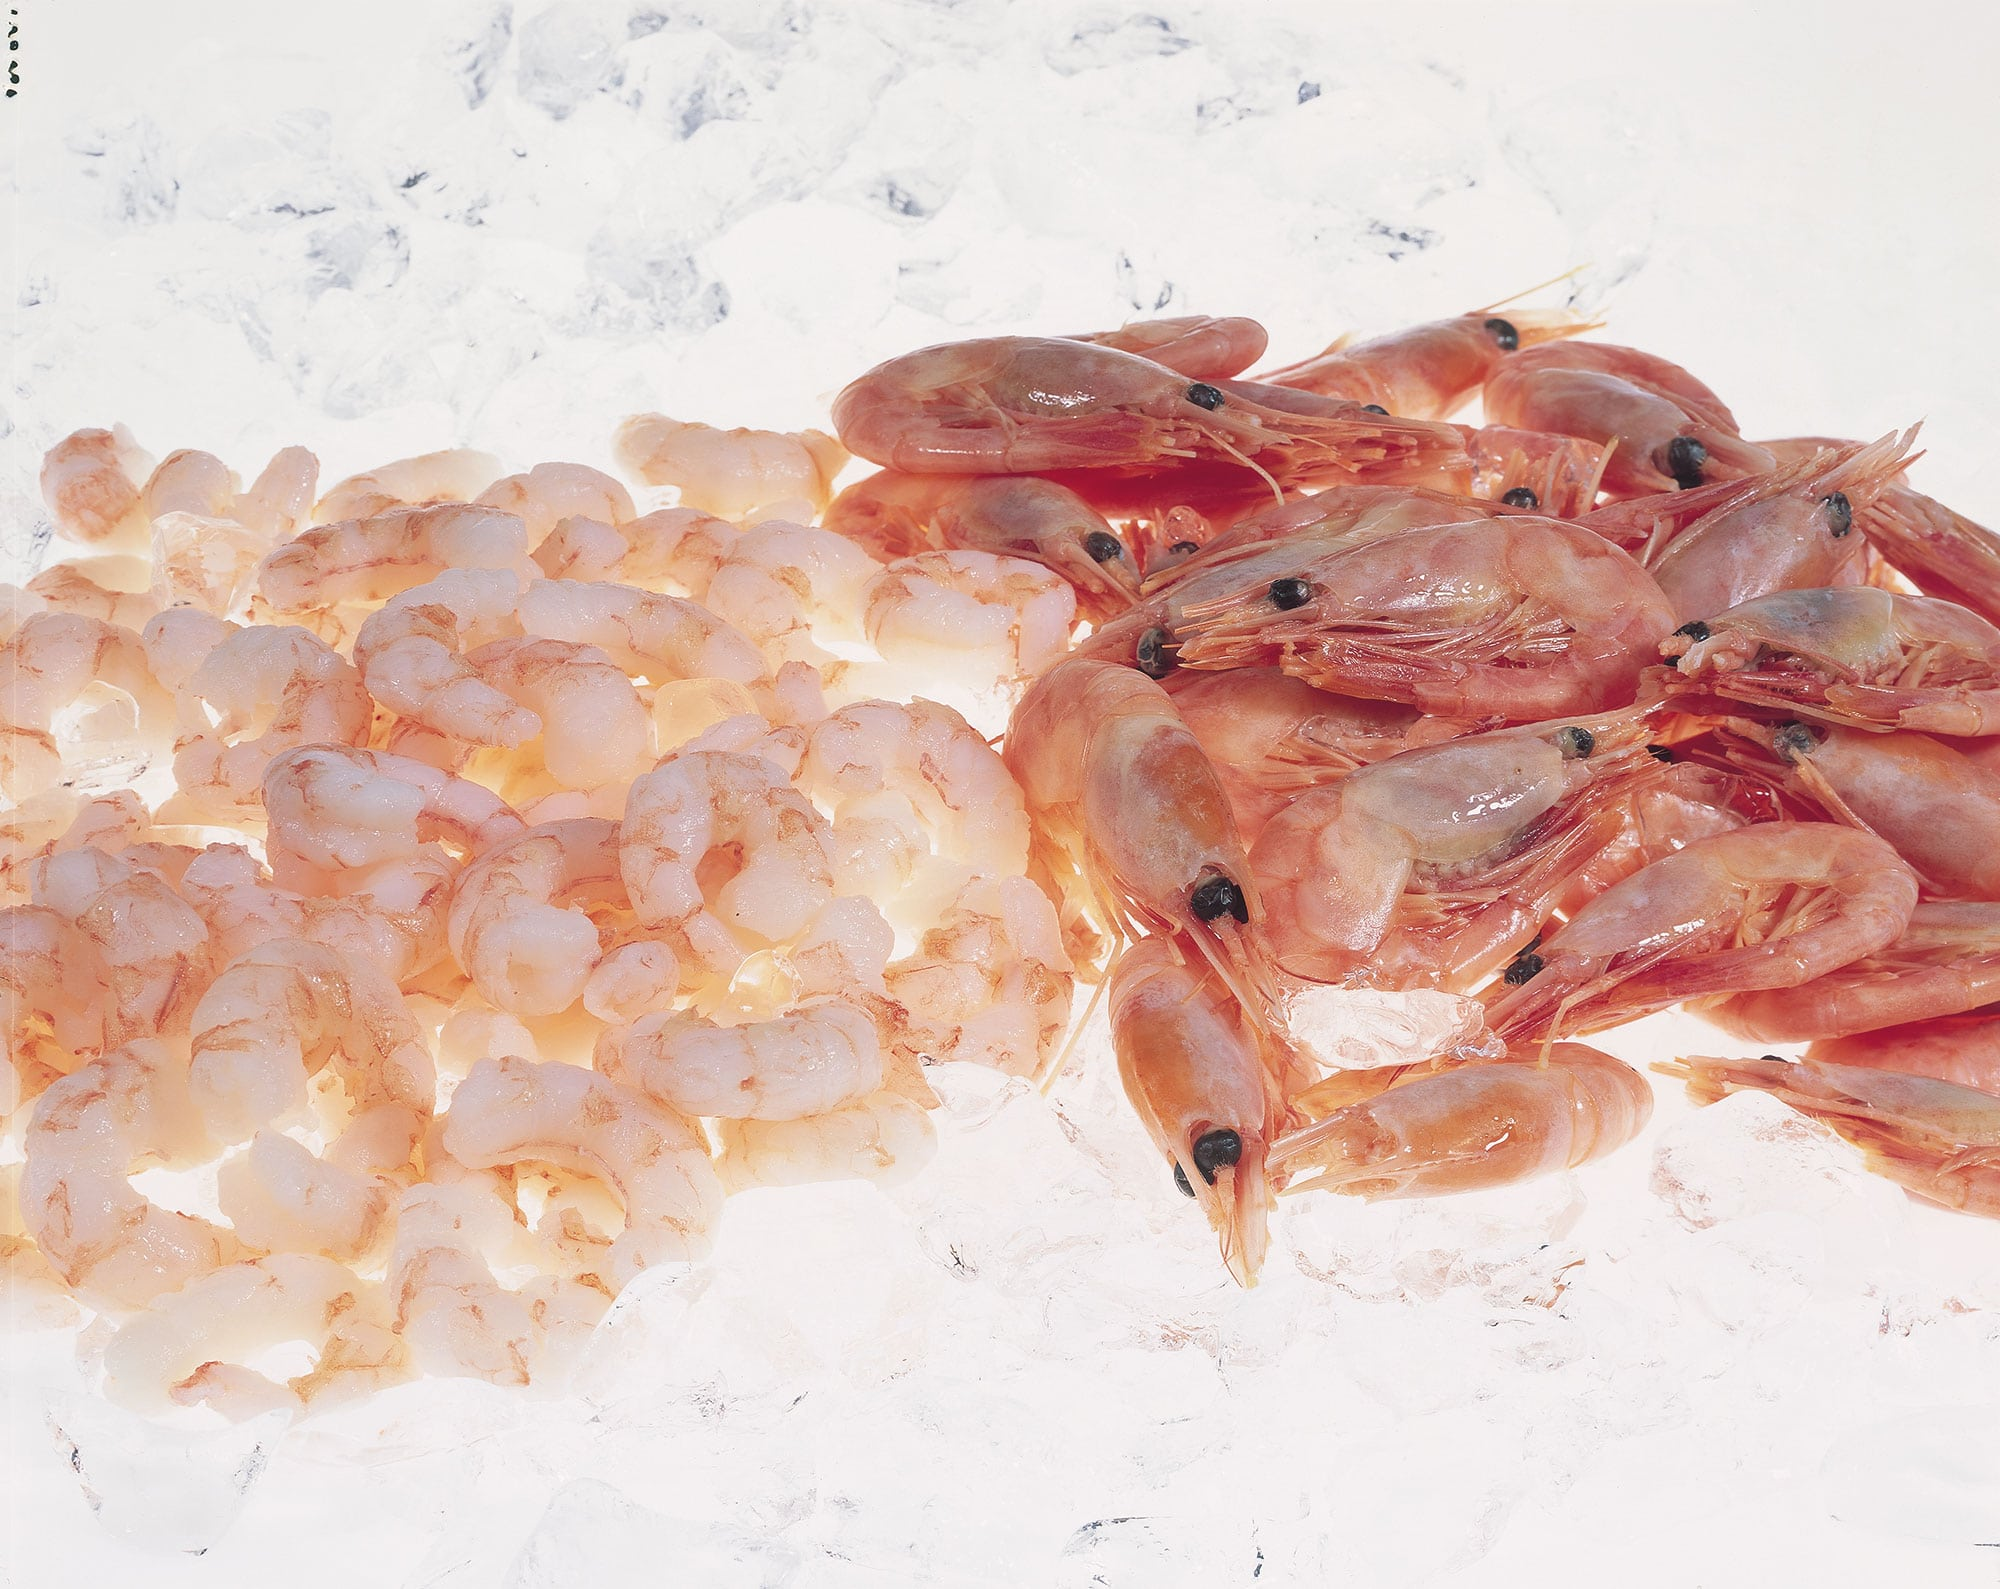 coldwater-prawns-3